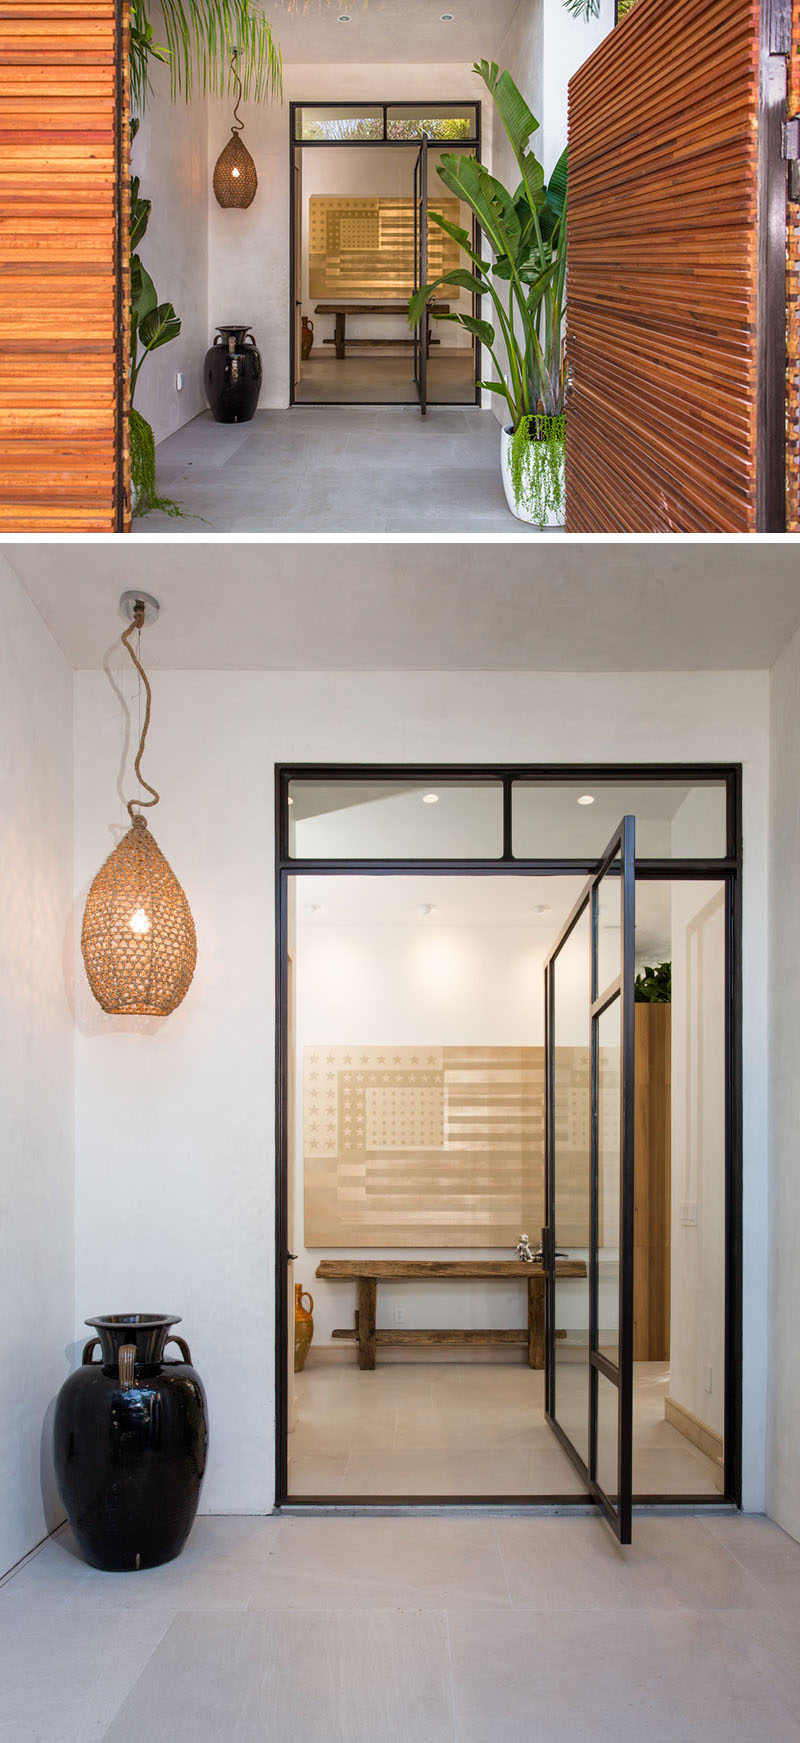 The pivoting glass front door of this modern house provides a view of the artwork before entering the home. #PivotingGlassDoor #PivotingDoor #FrontDoor